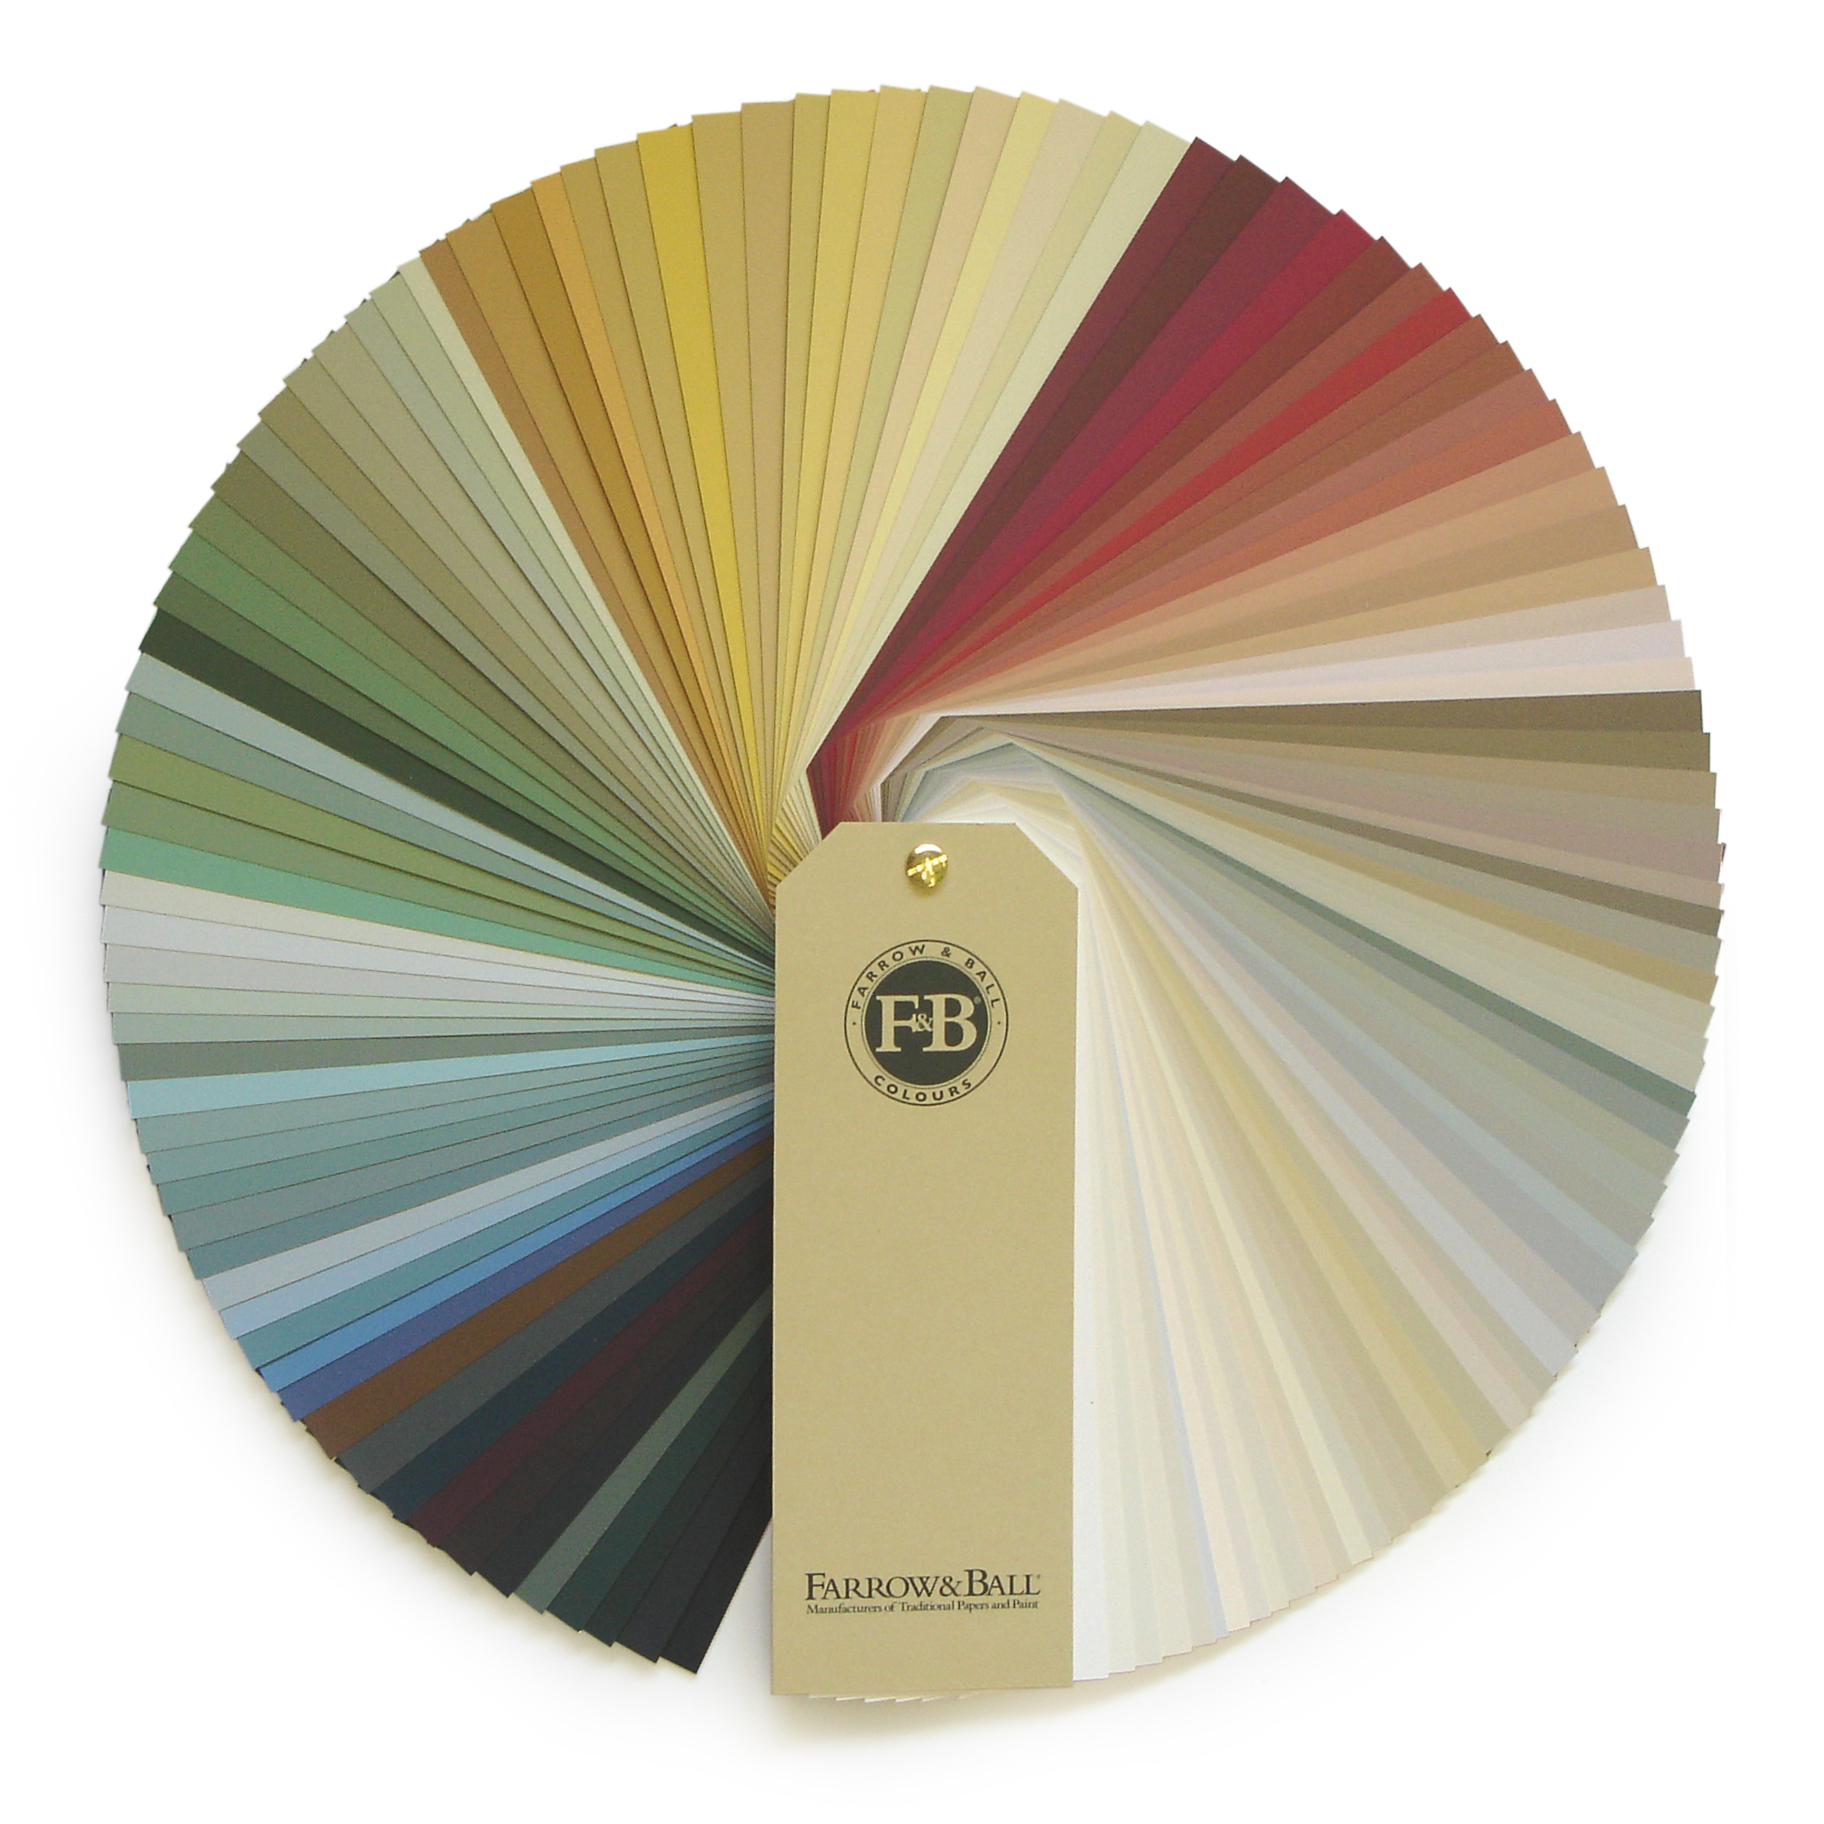 Farrow and Ball color wheel.jpg